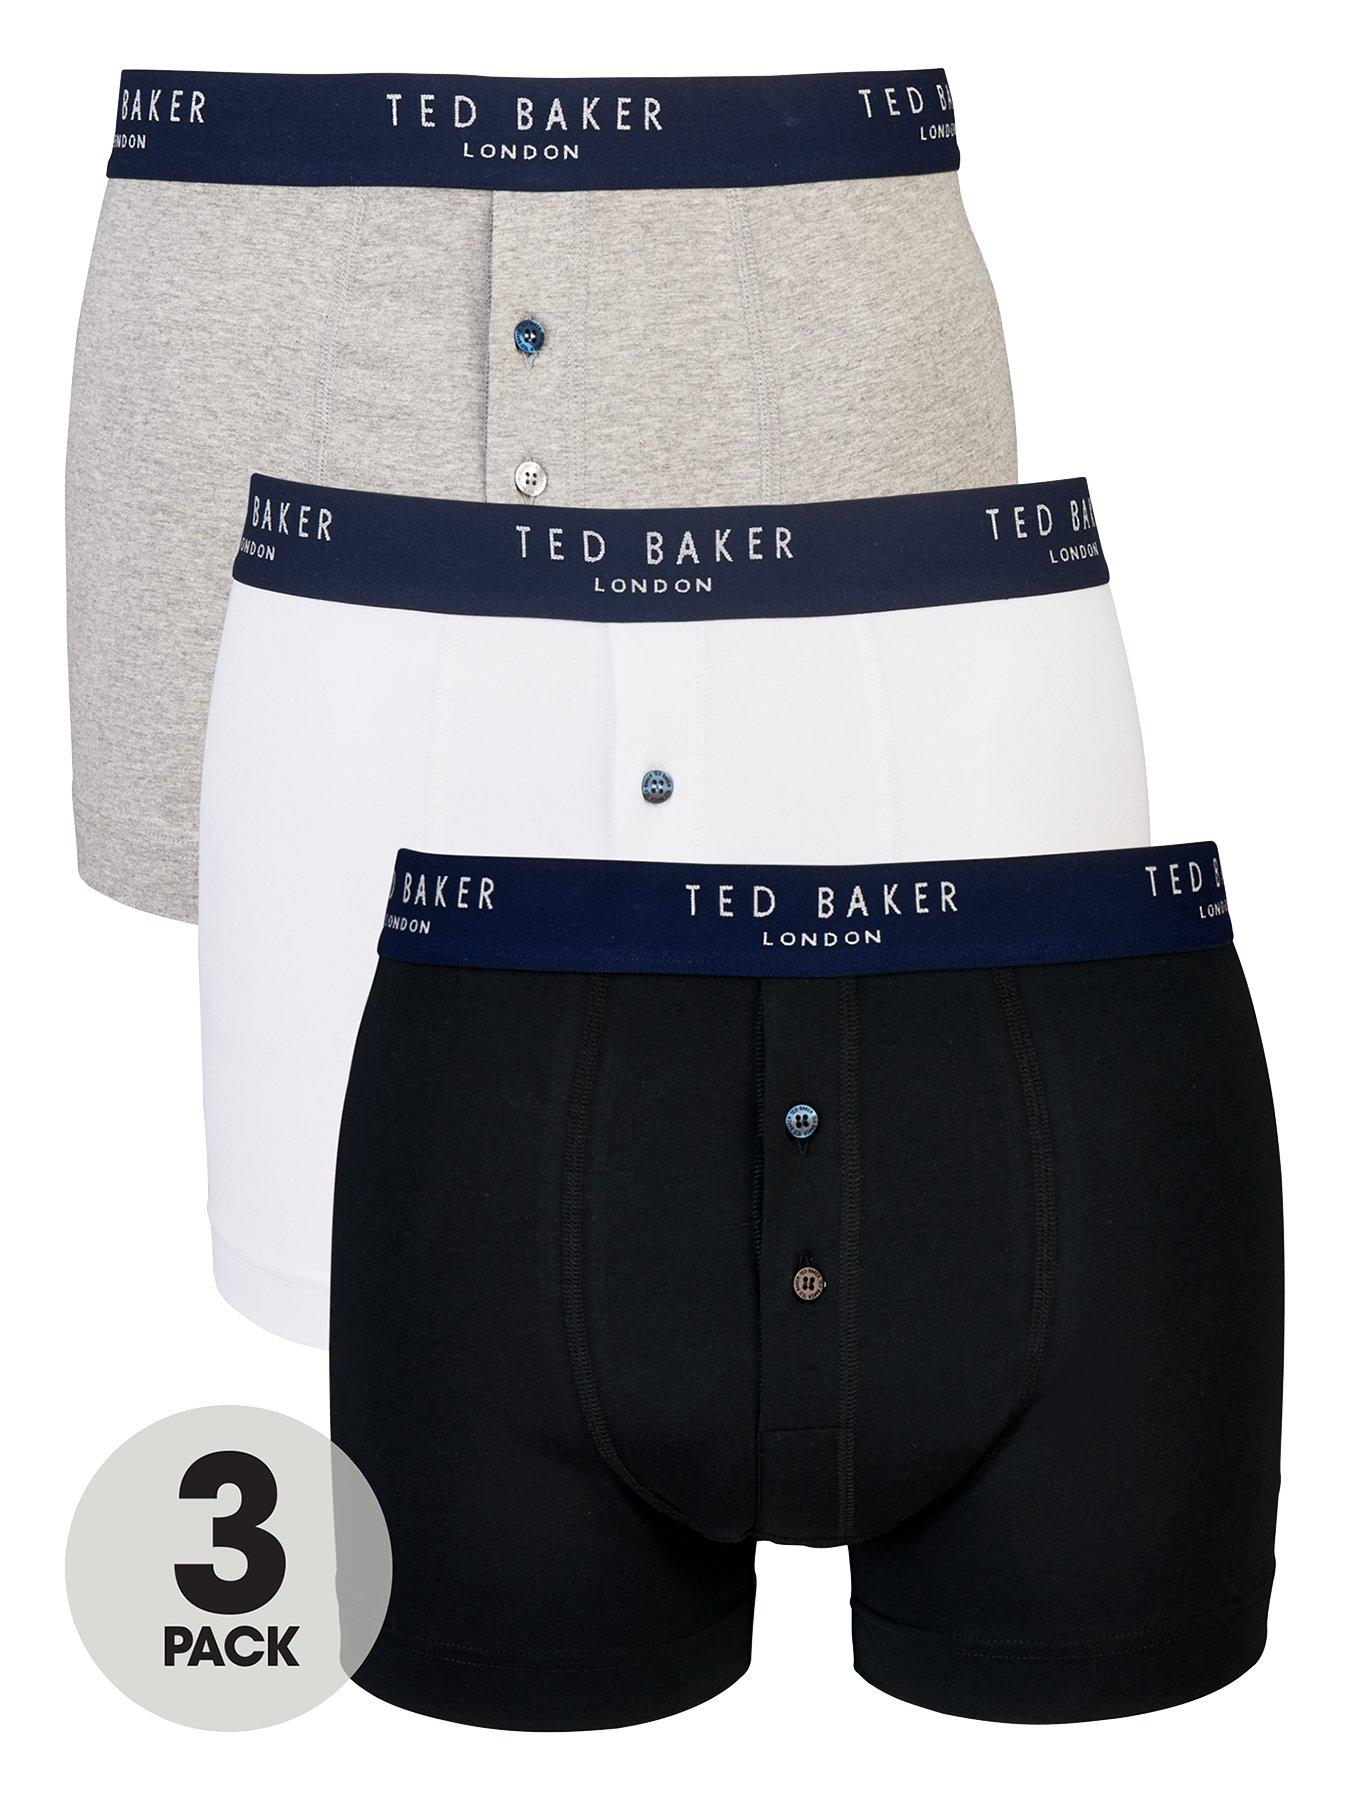 Ted Baker Mens 3 Pack Basic Button Boxers